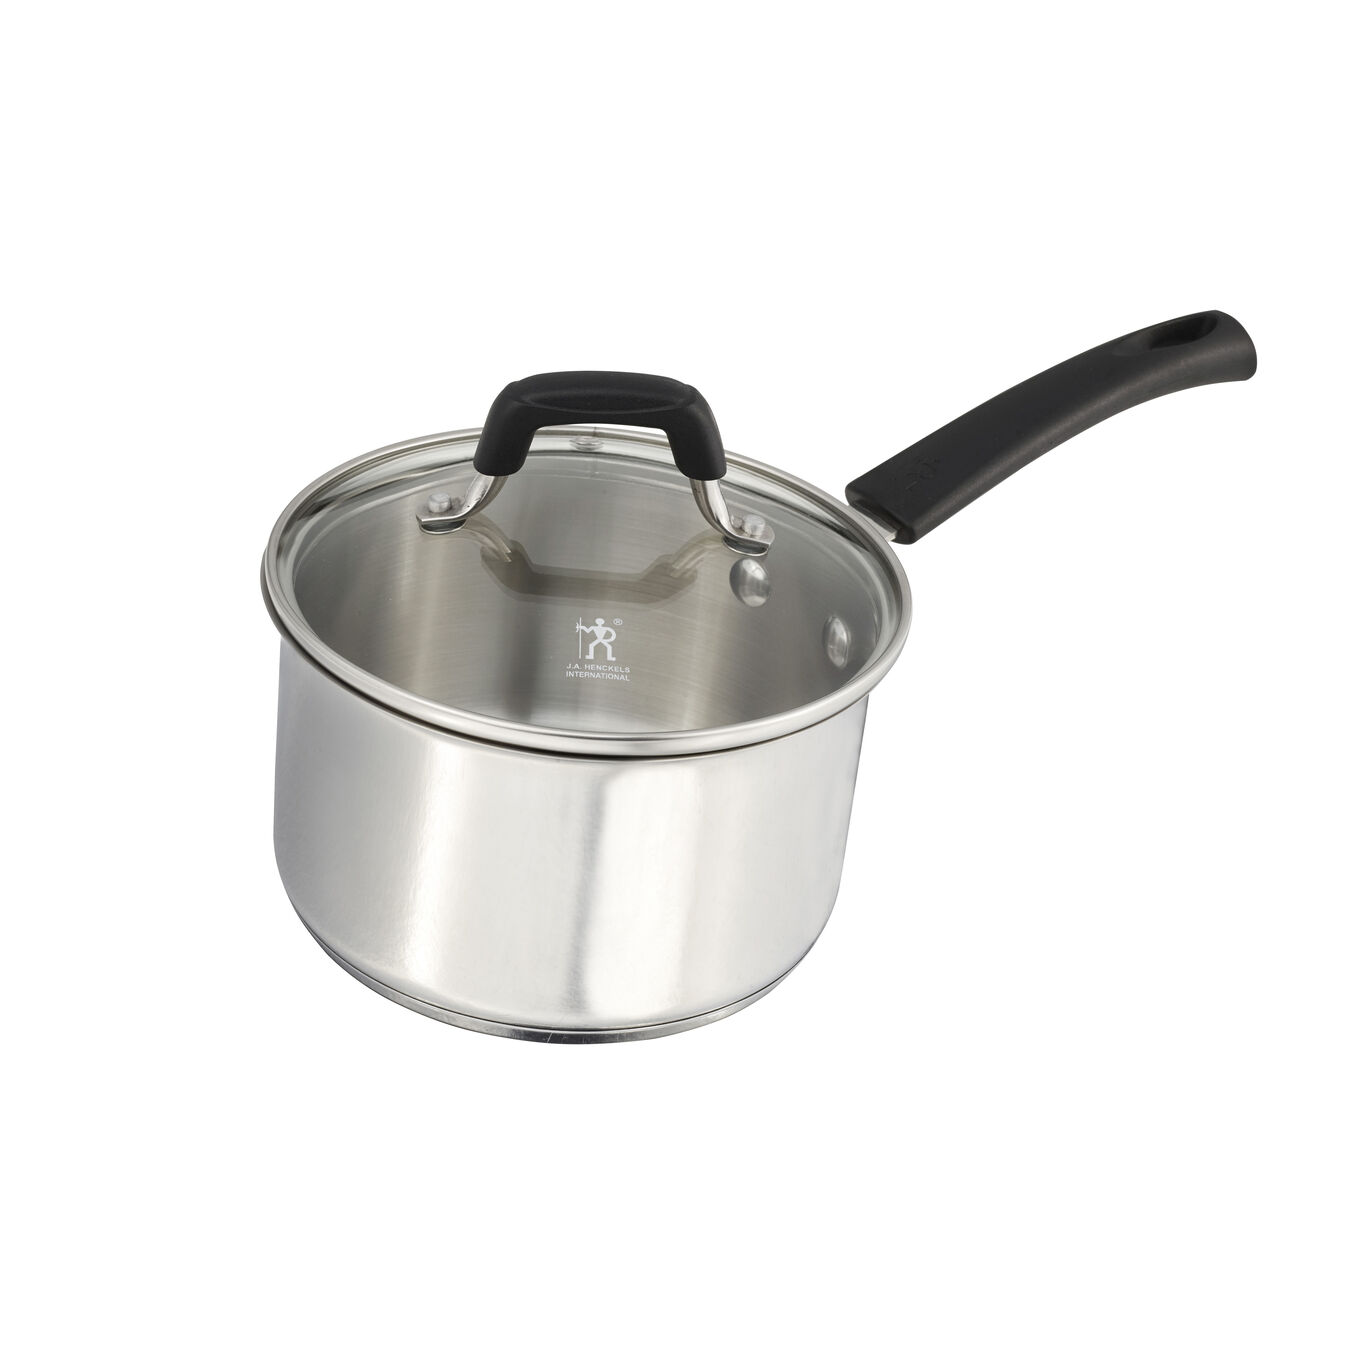 10 Piece Stainless steel Cookware set,,large 5